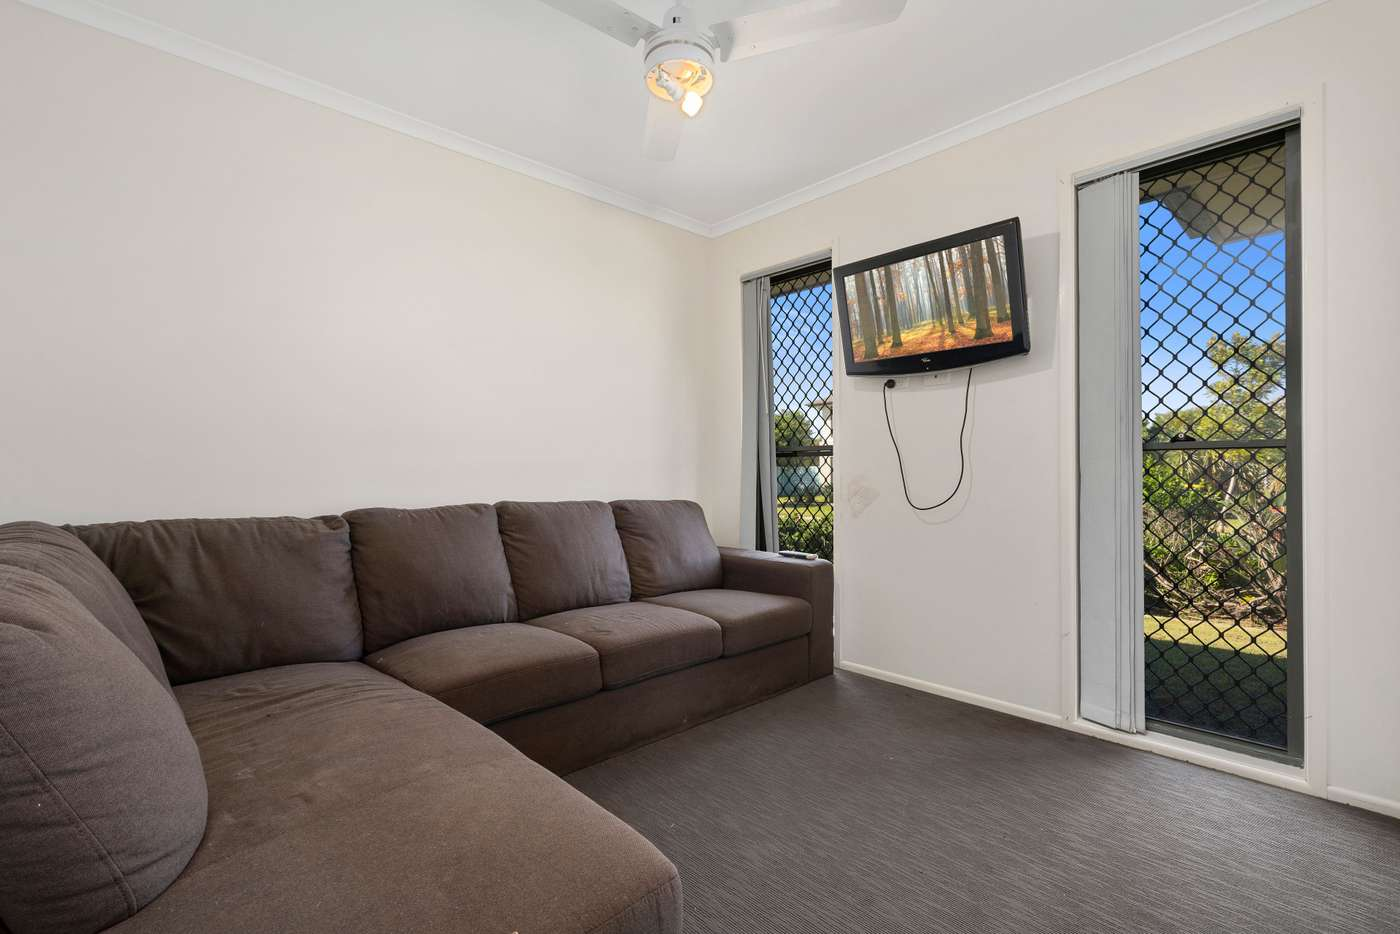 Sixth view of Homely house listing, 26 Lehmann Circuit, Caboolture South QLD 4510